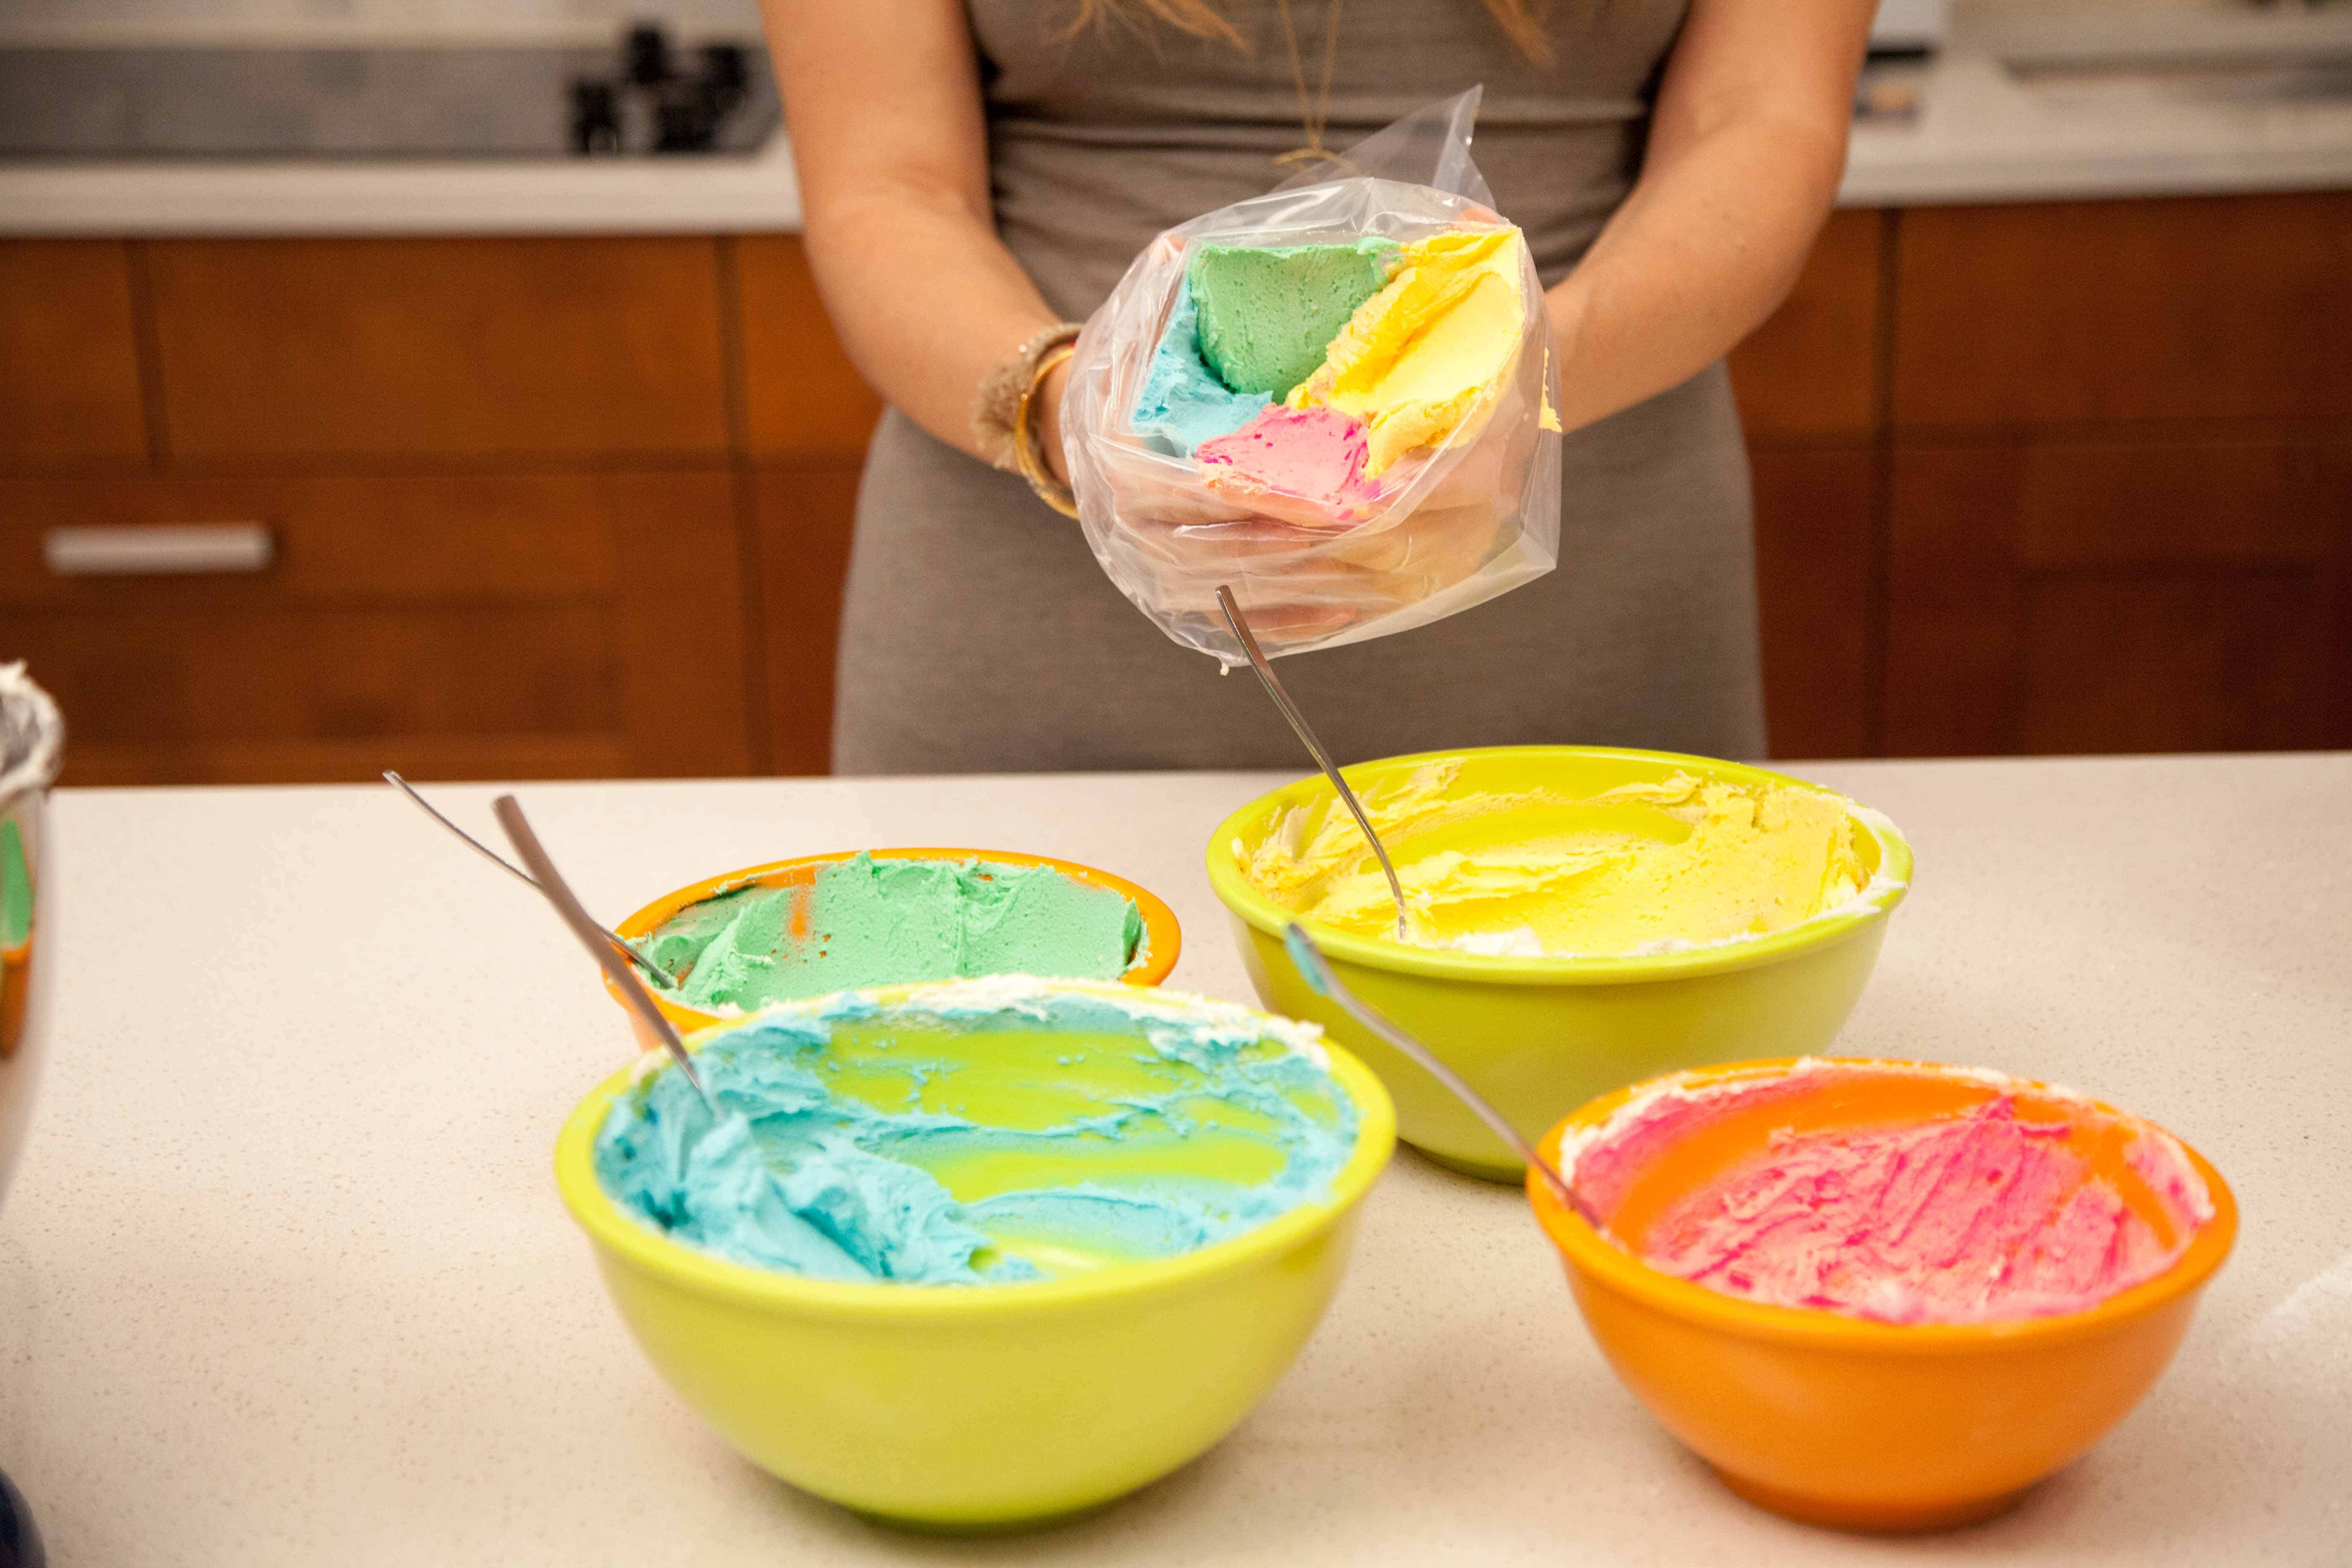 How To Do Icing On Cake